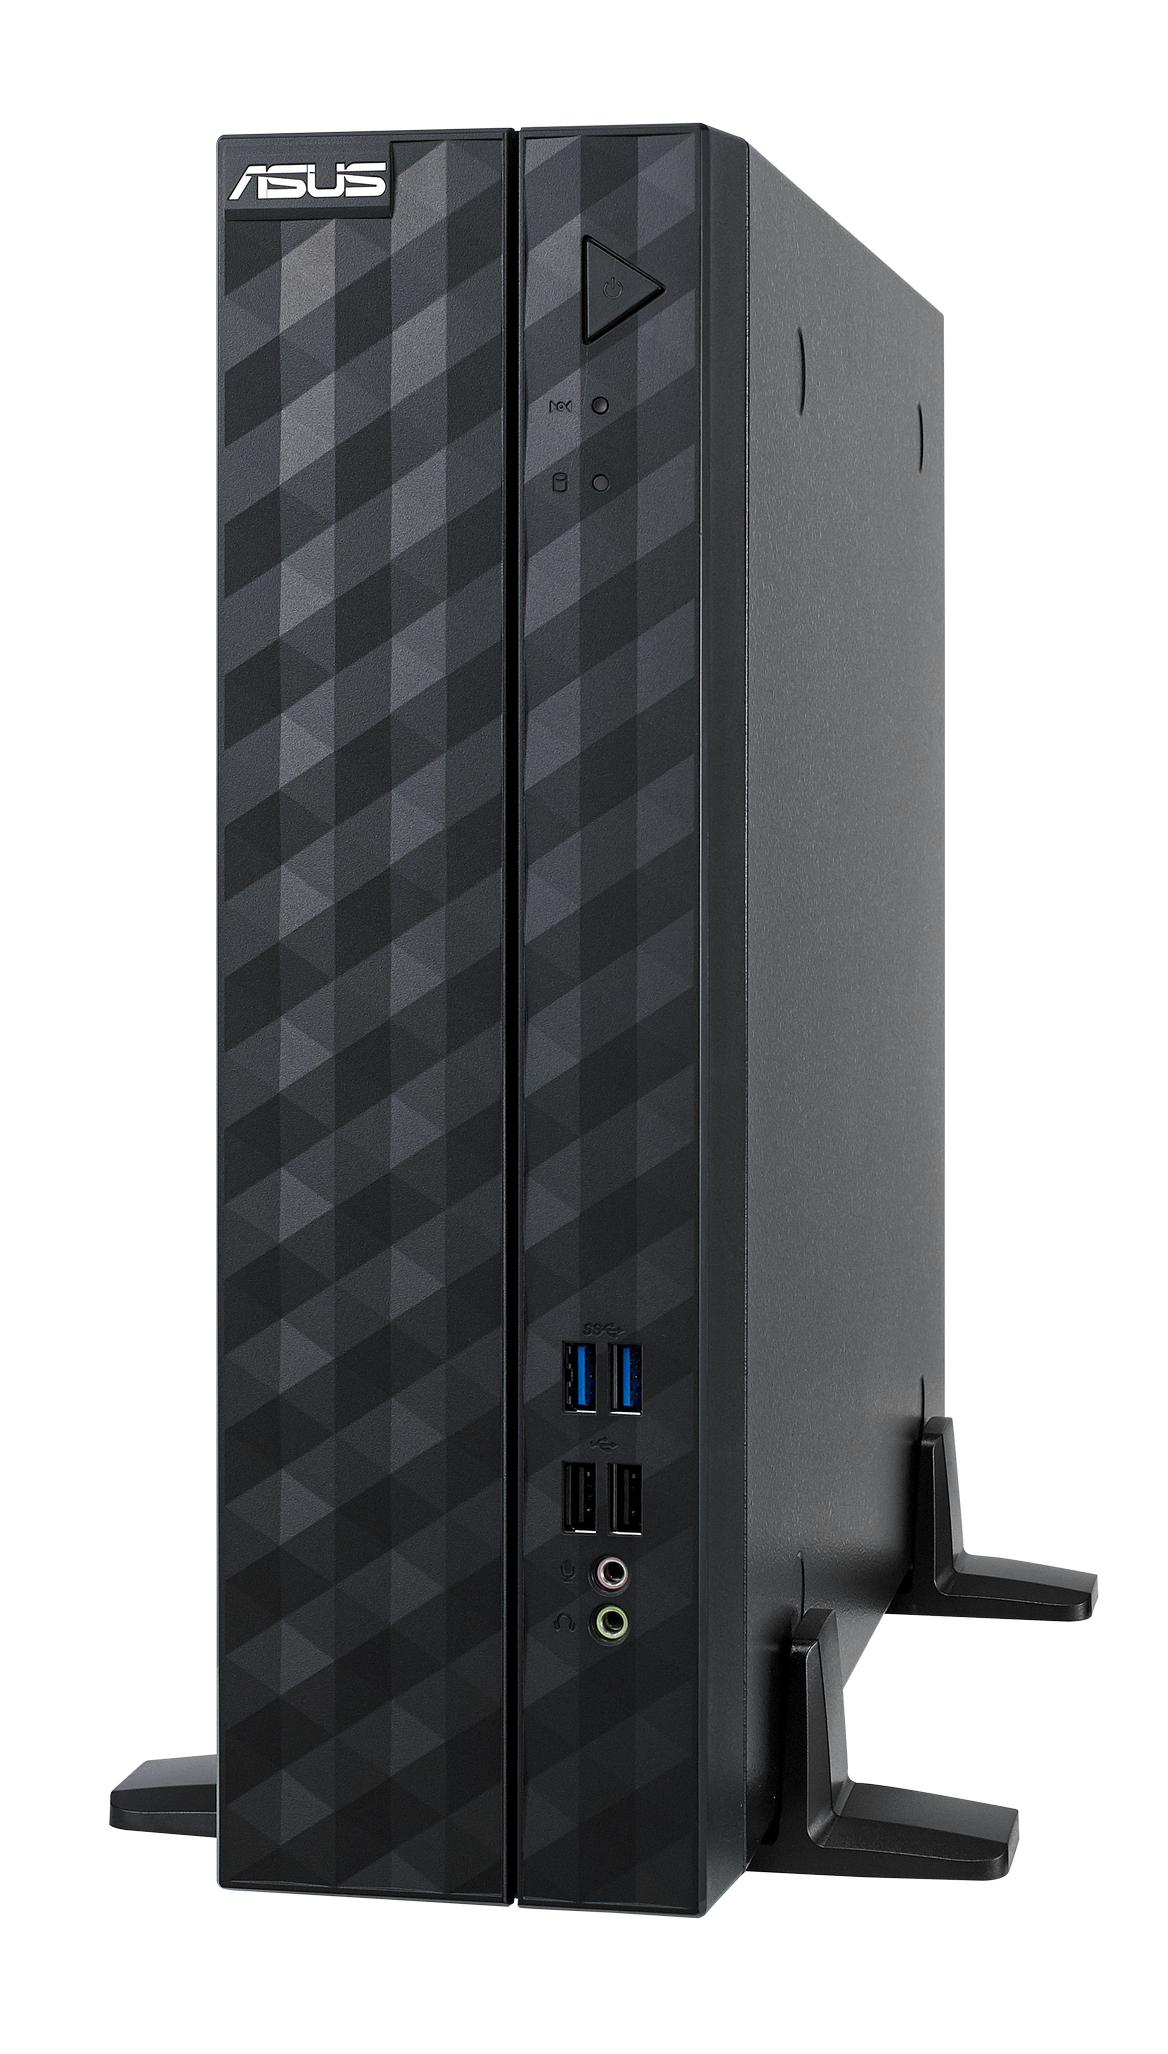 ASUS-Mehlow-Workstation-E500-G5-SFF.png